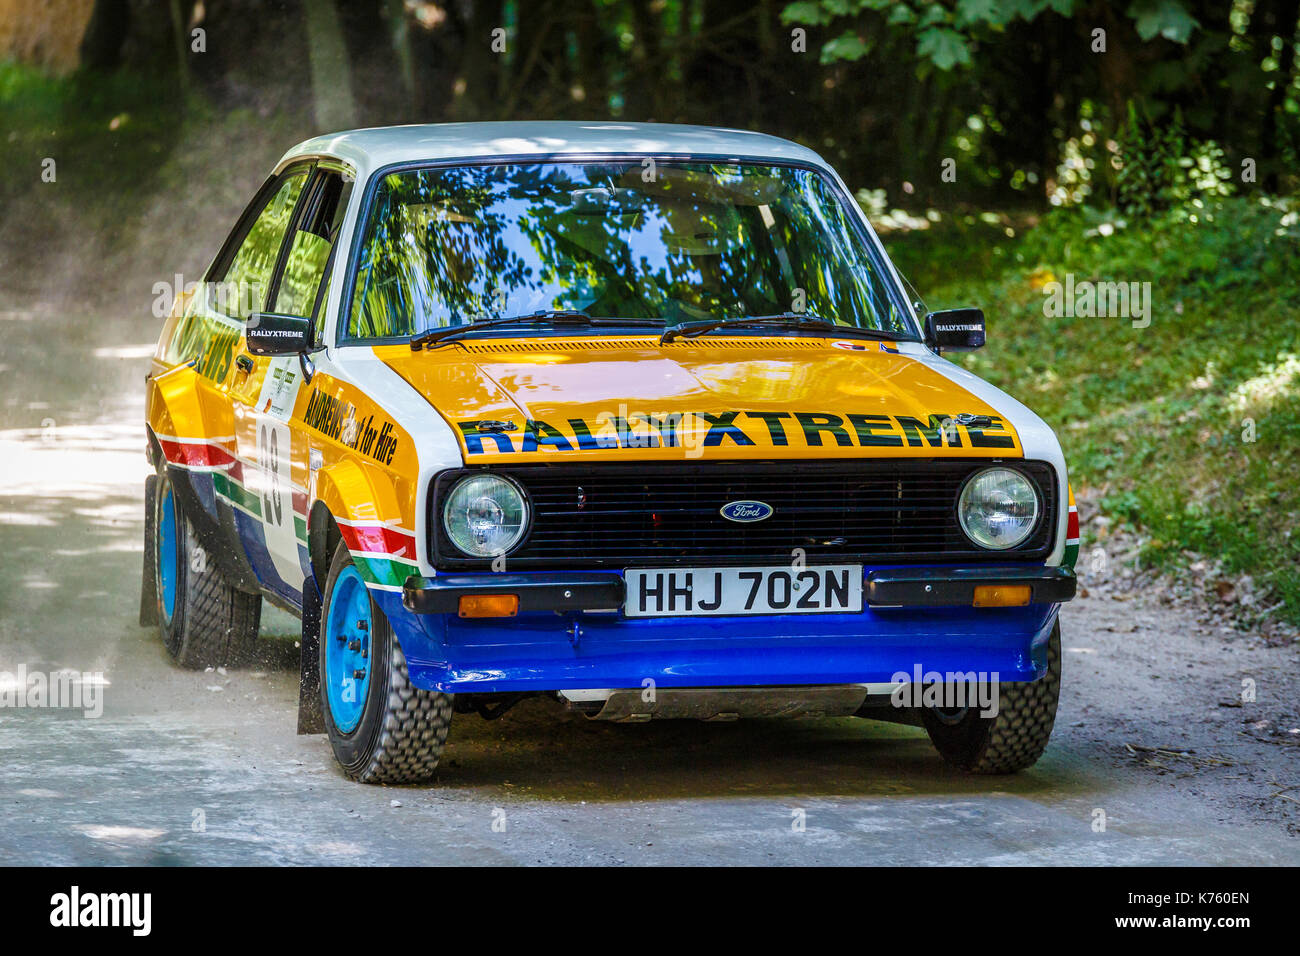 Ford Mk2 Rally Car Stock Photos & Ford Mk2 Rally Car Stock Images ...